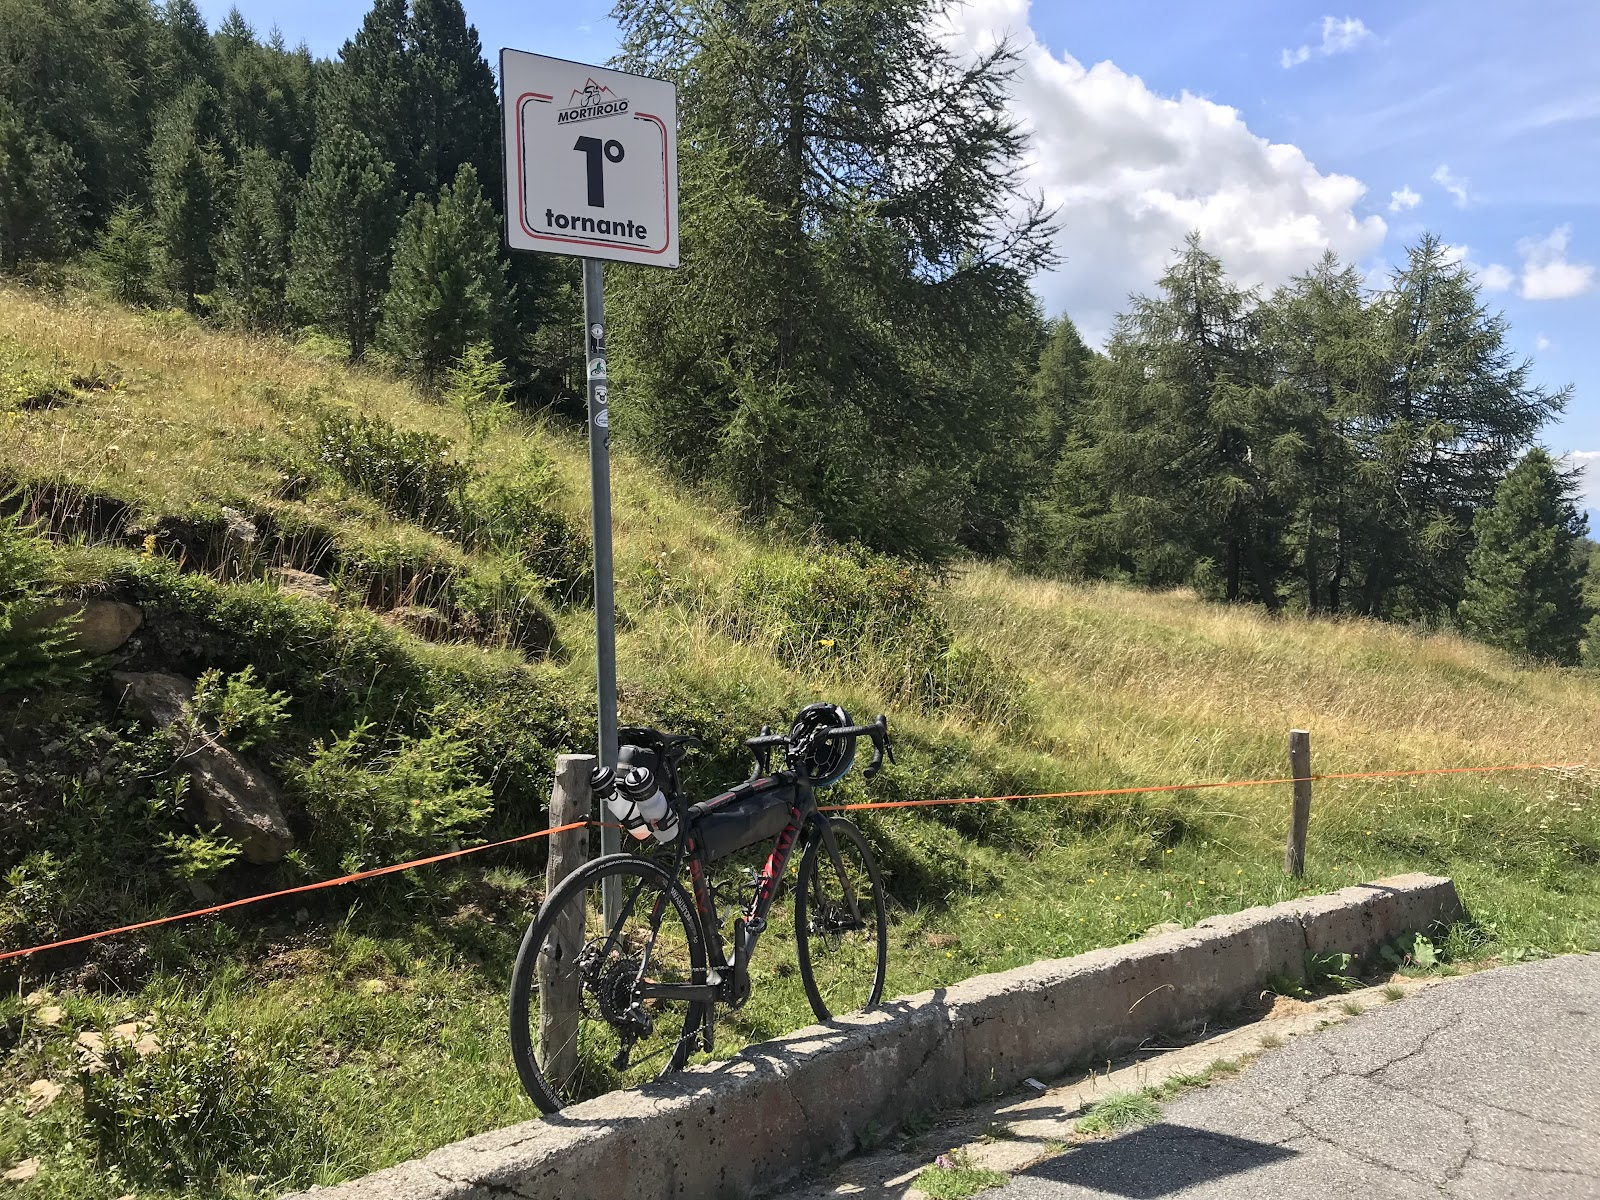 Passo del Mortirolo from Tovo - bike leaning against tornanti 1 sign.